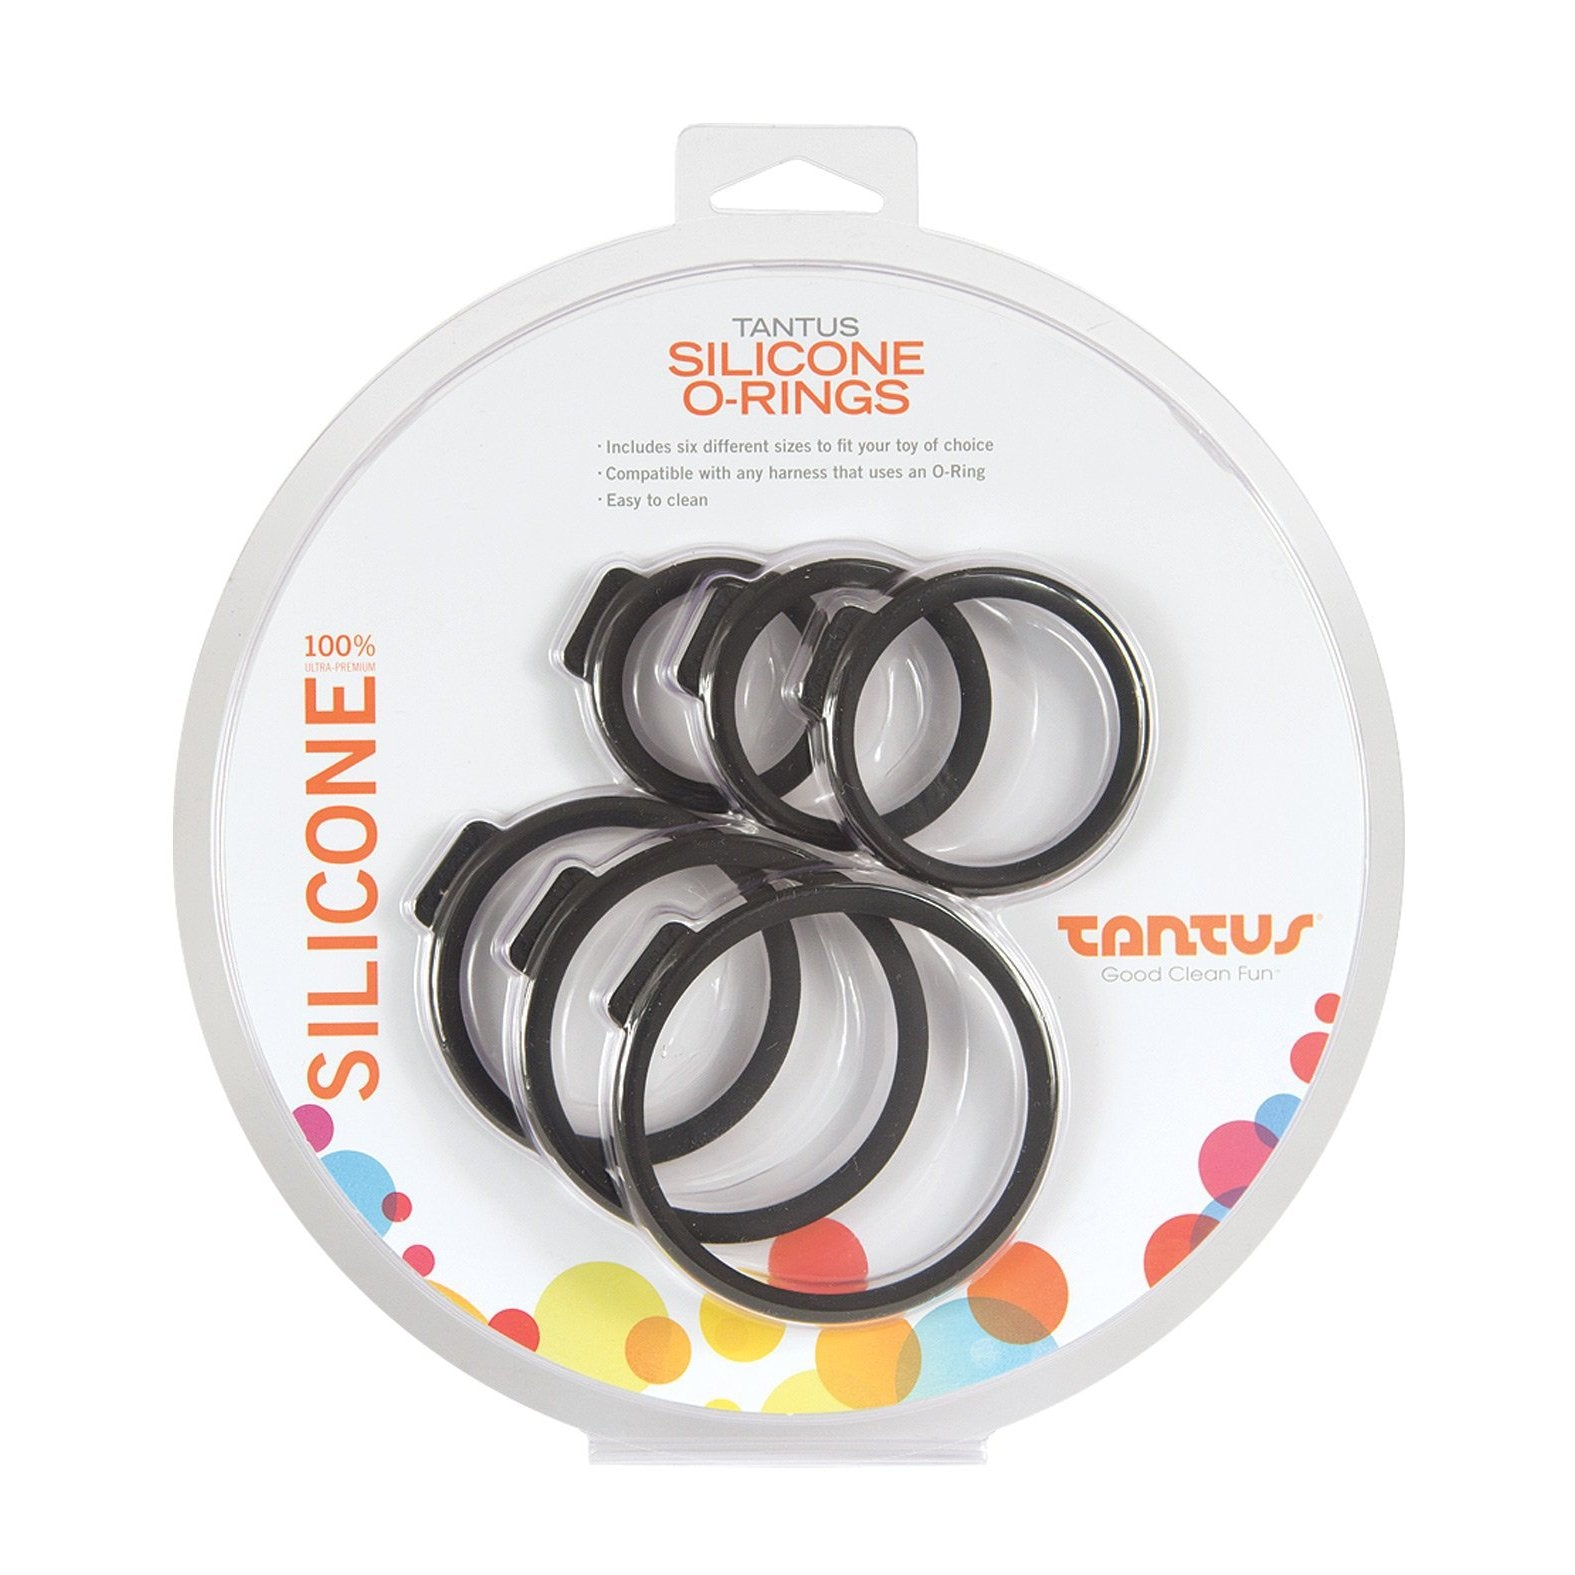 Tantus Silicone O-Rings Set - Pack of 6 - Gay Men's Sex Toys - Adam's Toy Box